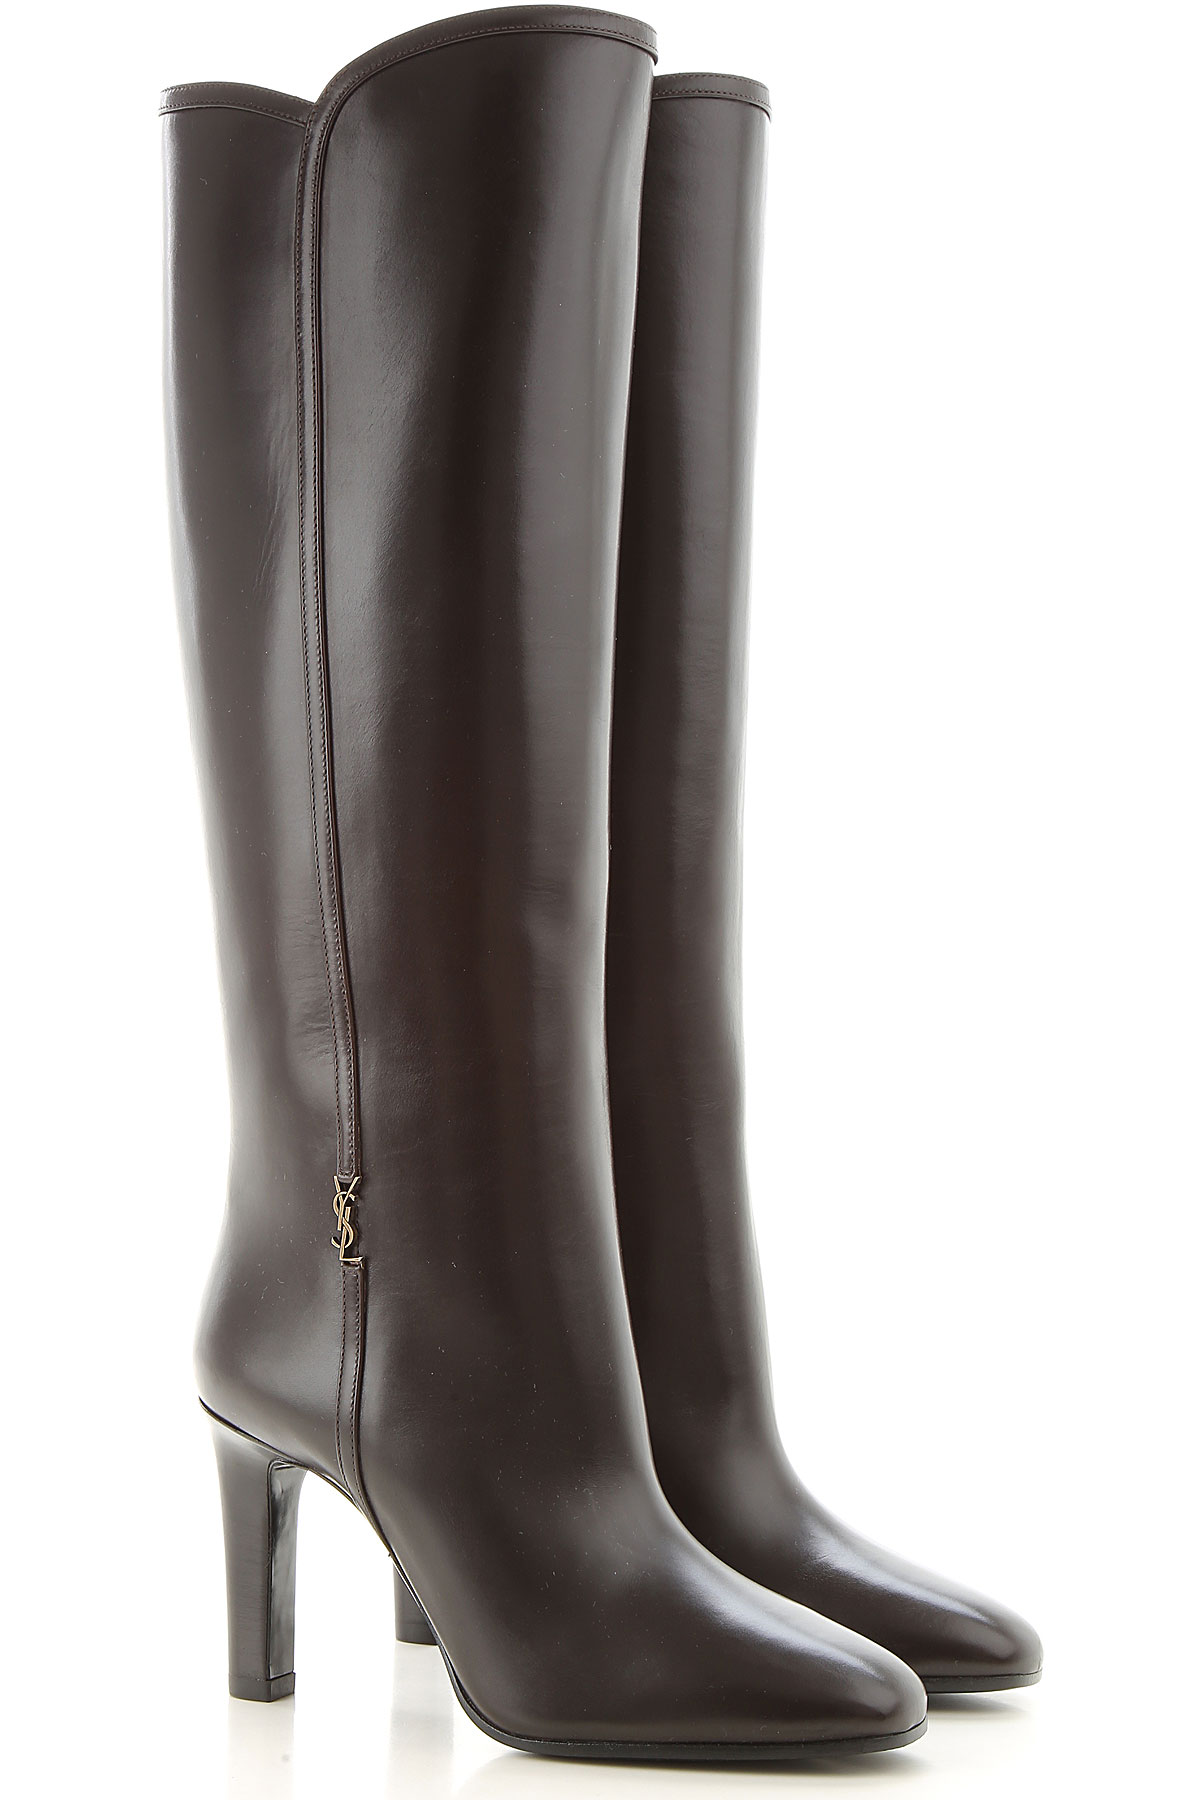 Yves Saint Laurent Boots For Women, Booties, Black, Leather, 2019, 3.5 4 4.5 5.5 6 6.5 7 7.5